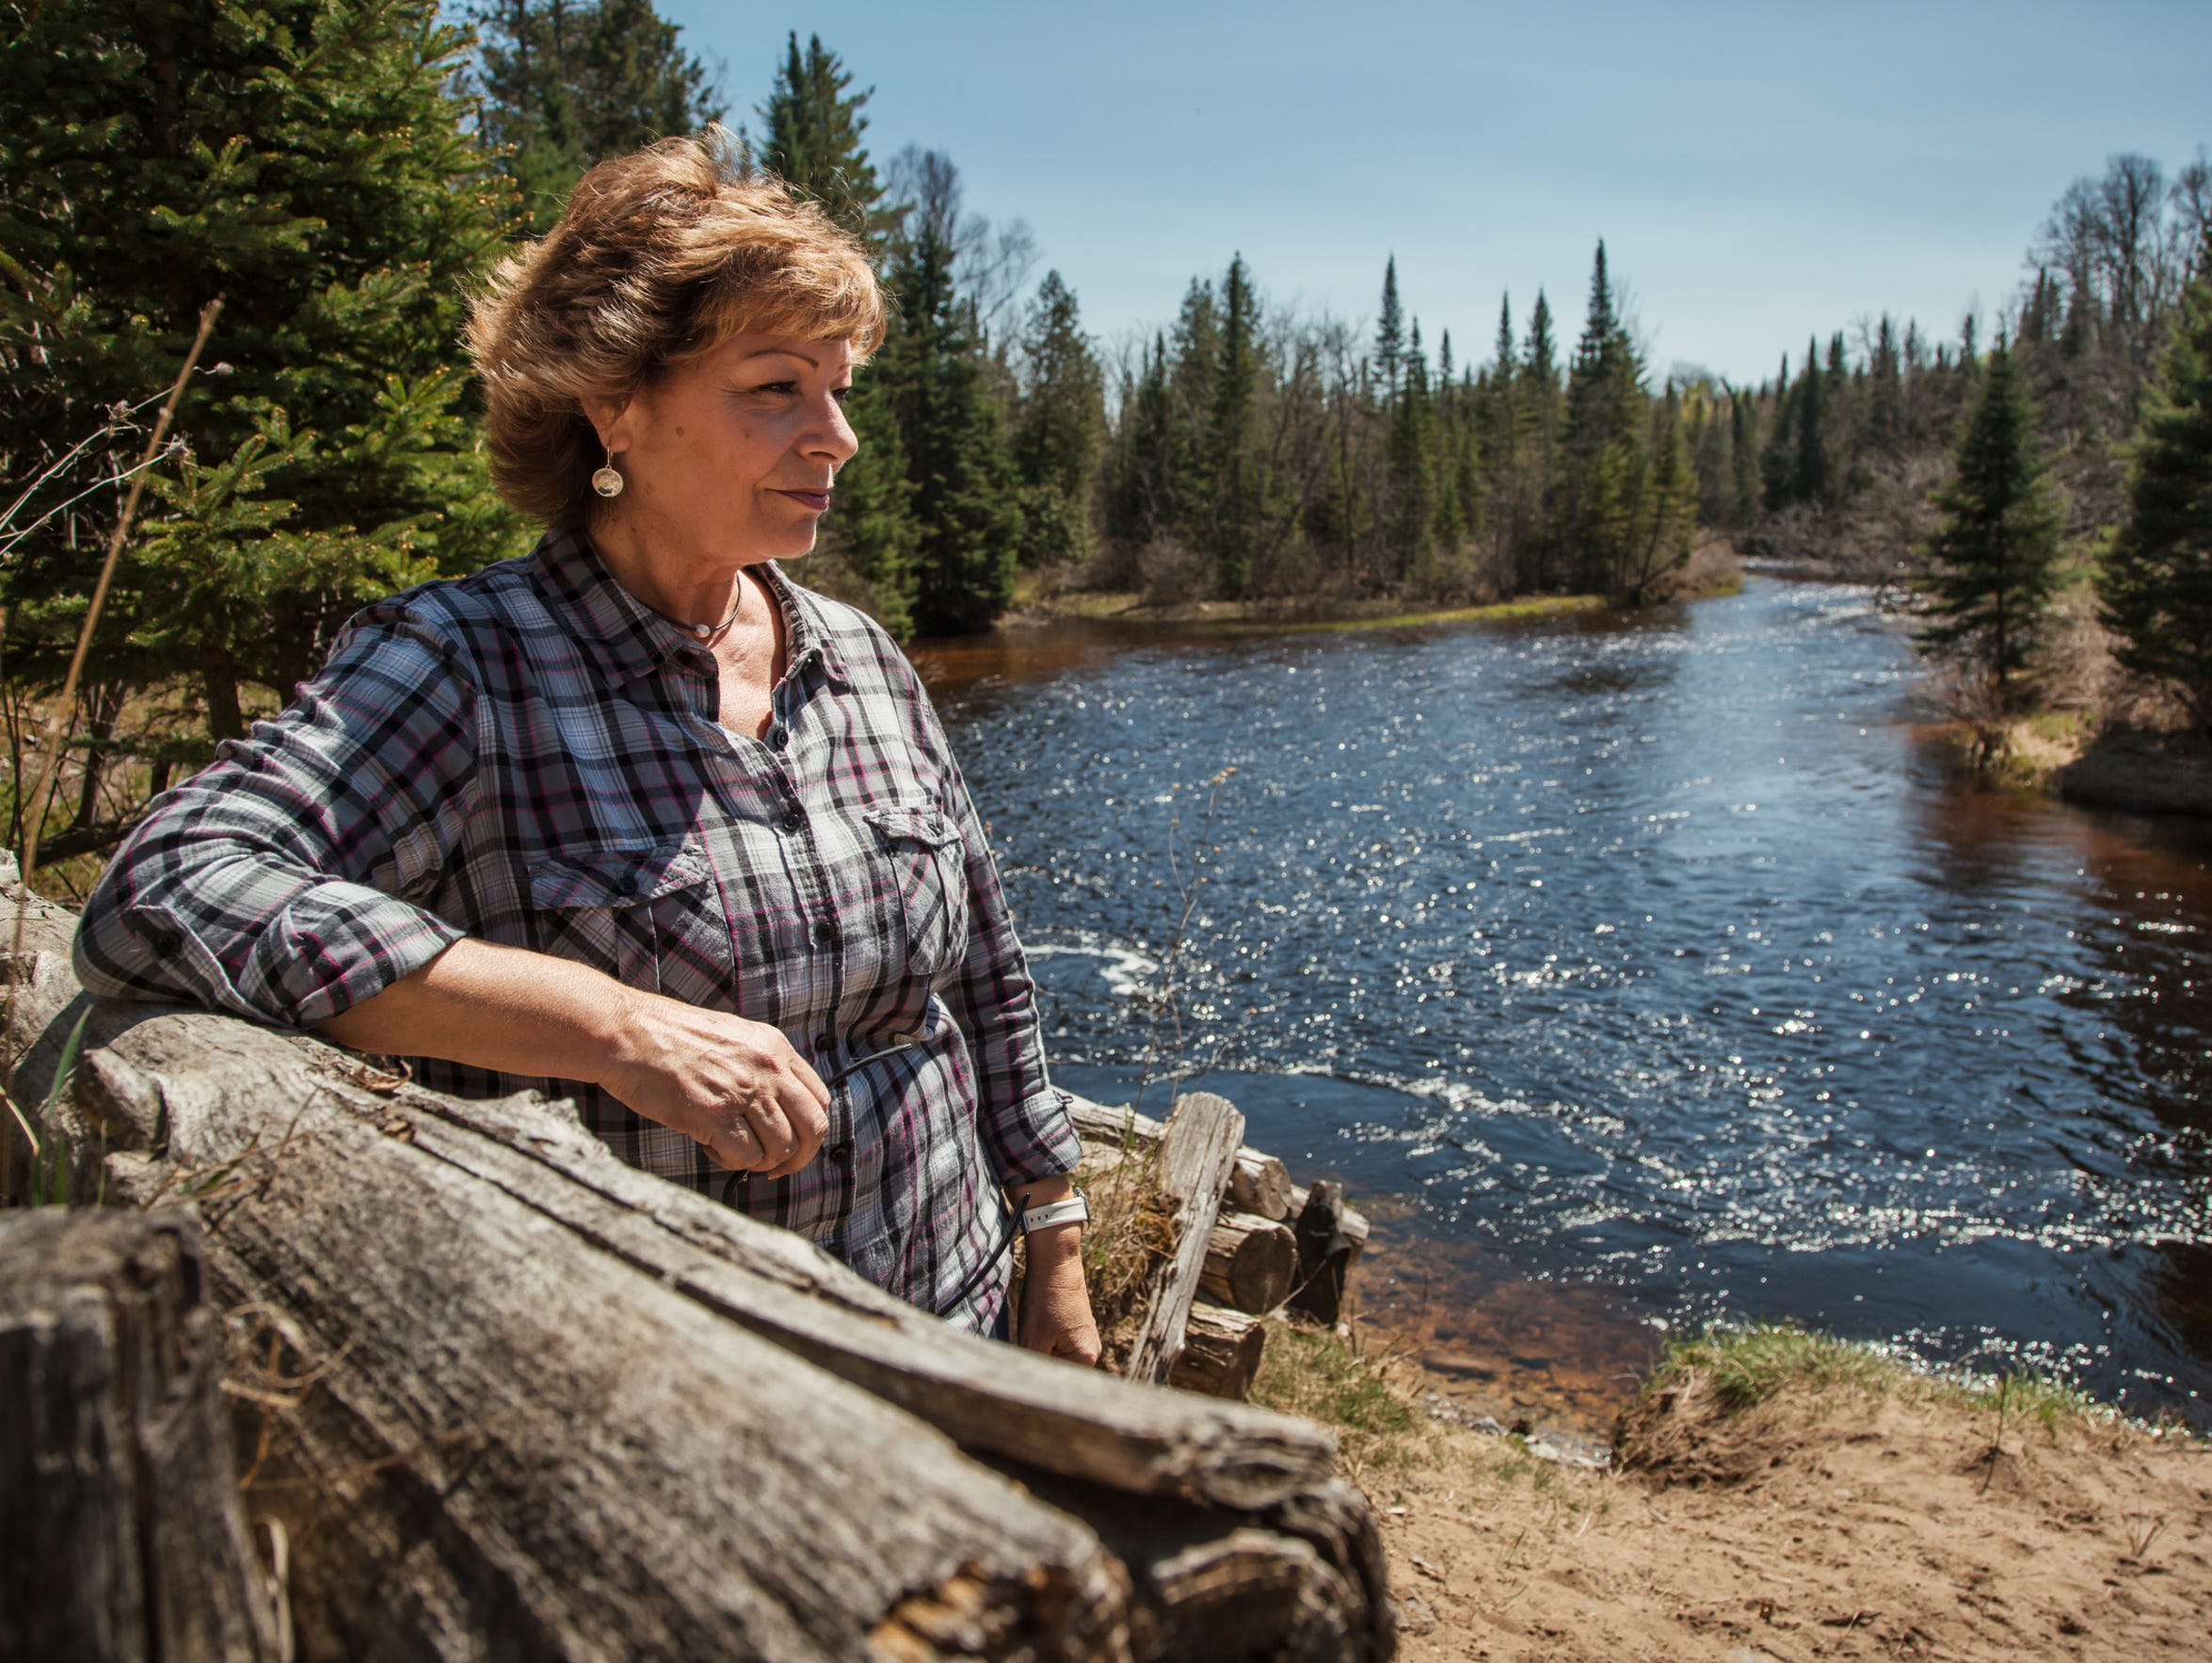 """""""It's just something intrinsic, that it feels good to the soul, and part of it is the experience of being out in nature, but also to know that together we have made a difference in these last 20 years to help this population,"""" said Brenda Archambo, founder of the  Black Lake Chapter of Sturgeon for Tomorrow, while standing along the Black River in Onaway in northern Michigan on Tuesday, May 15, 2018.  Archambo and her organization have made efforts to help restore the Great Lakes' dwindling sturgeon population, spread awareness of the problem and help protect them from poaching."""